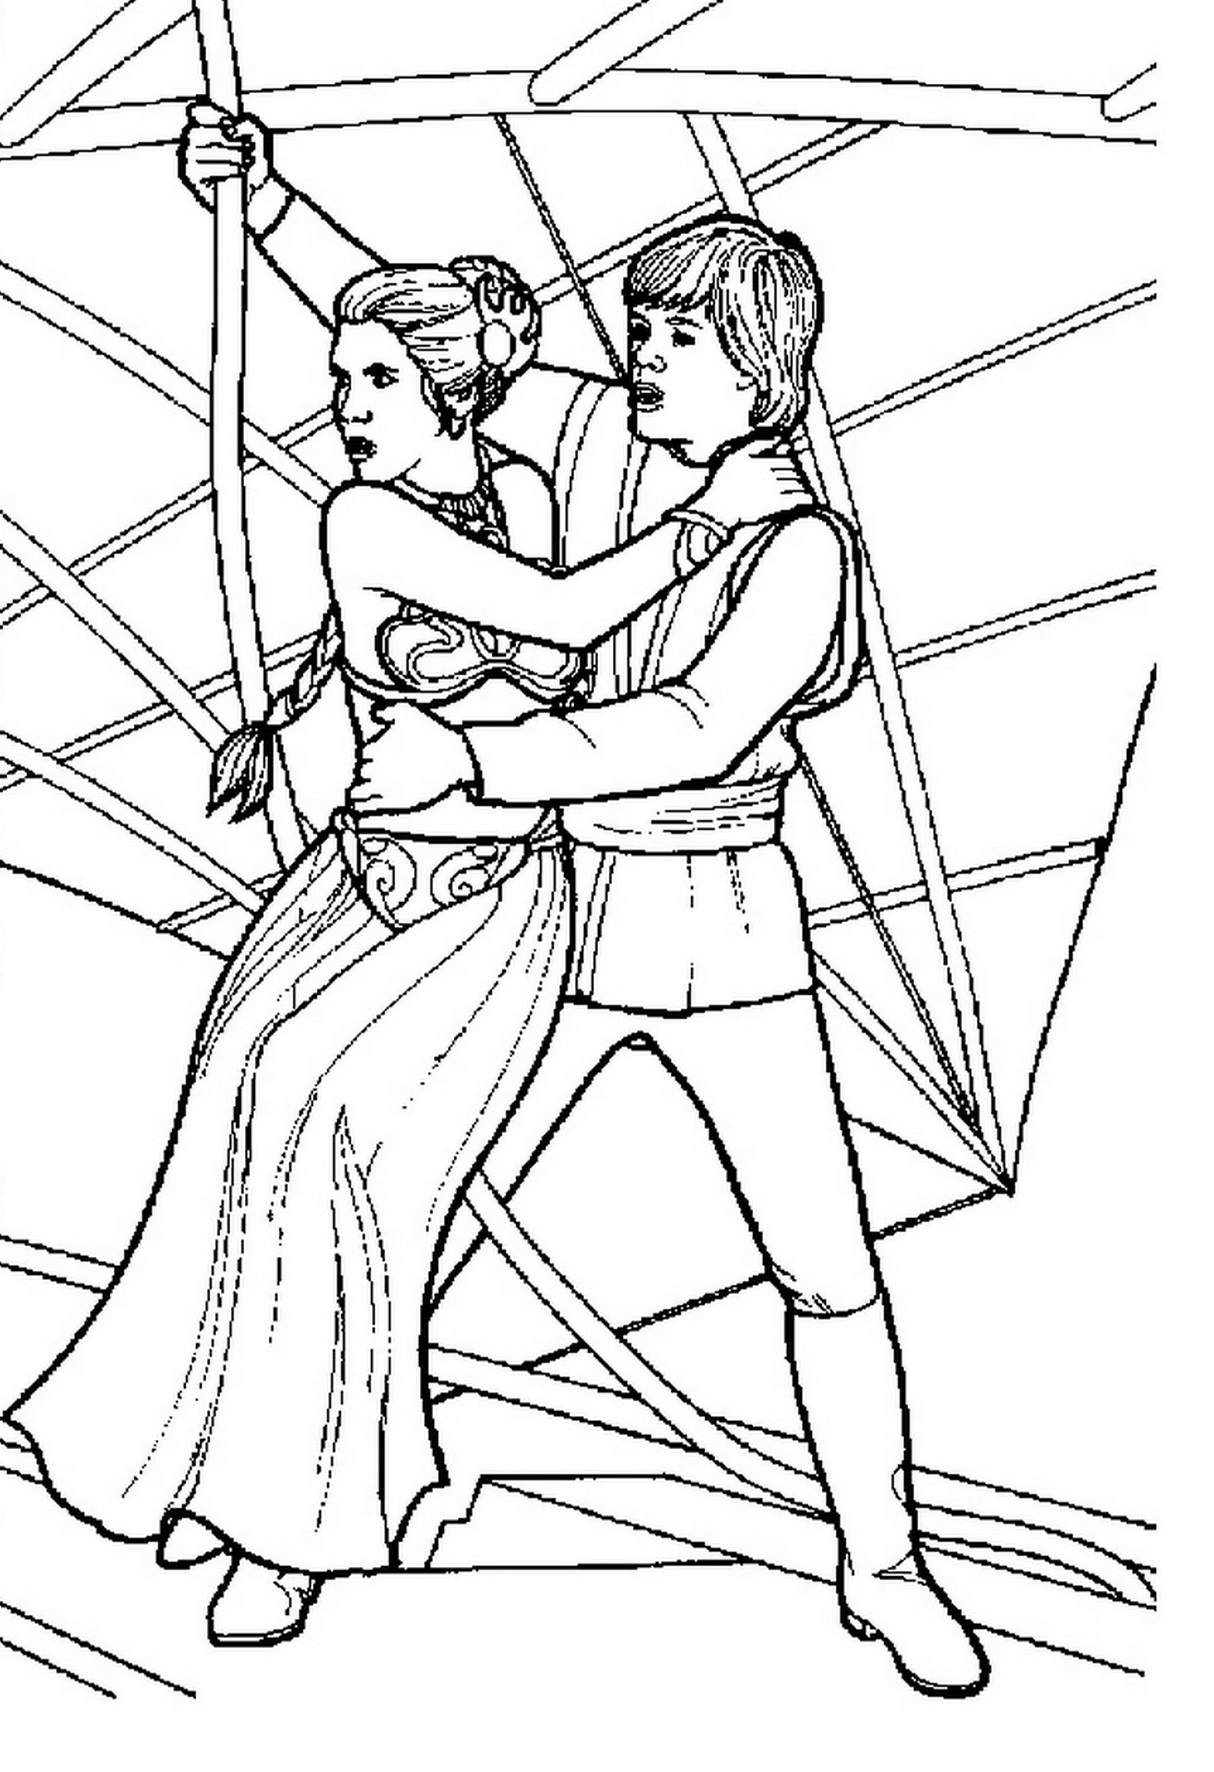 Princess Leia Coloring Pages - Best Coloring Pages For Kids